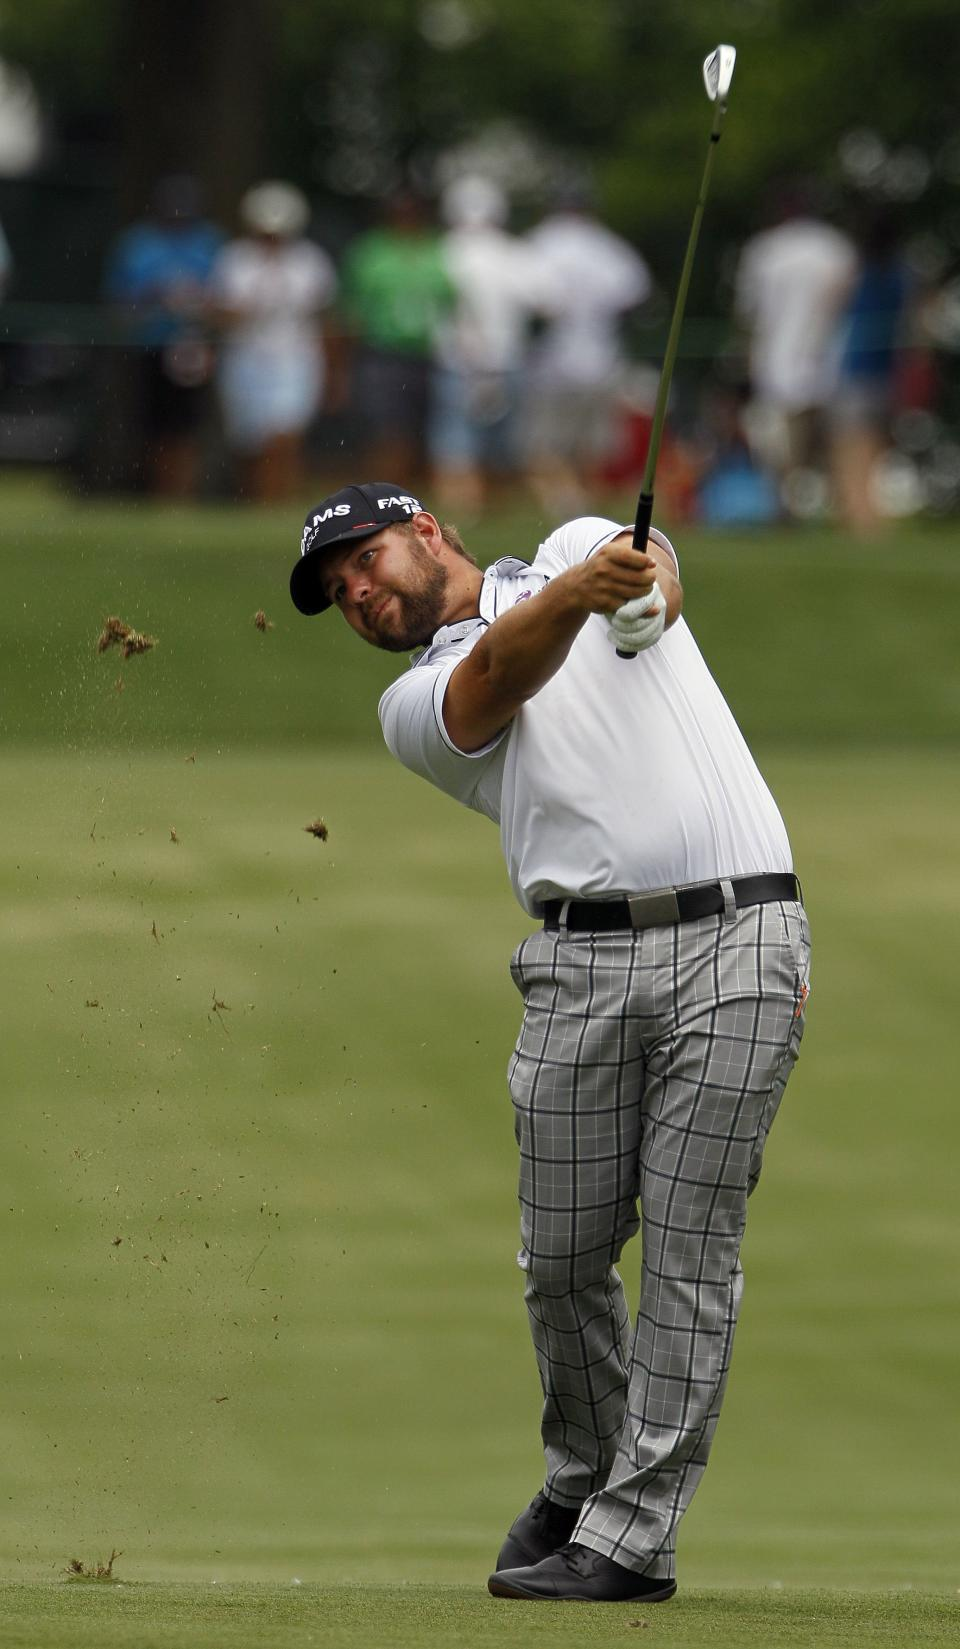 Ryan Moore hits from the first fairway  during the third round of the Wells Fargo Championship golf tournament at Quail Hollow Club in Charlotte, N.C., Saturday, May 5, 2012. (AP Photo/Gerry Broome)